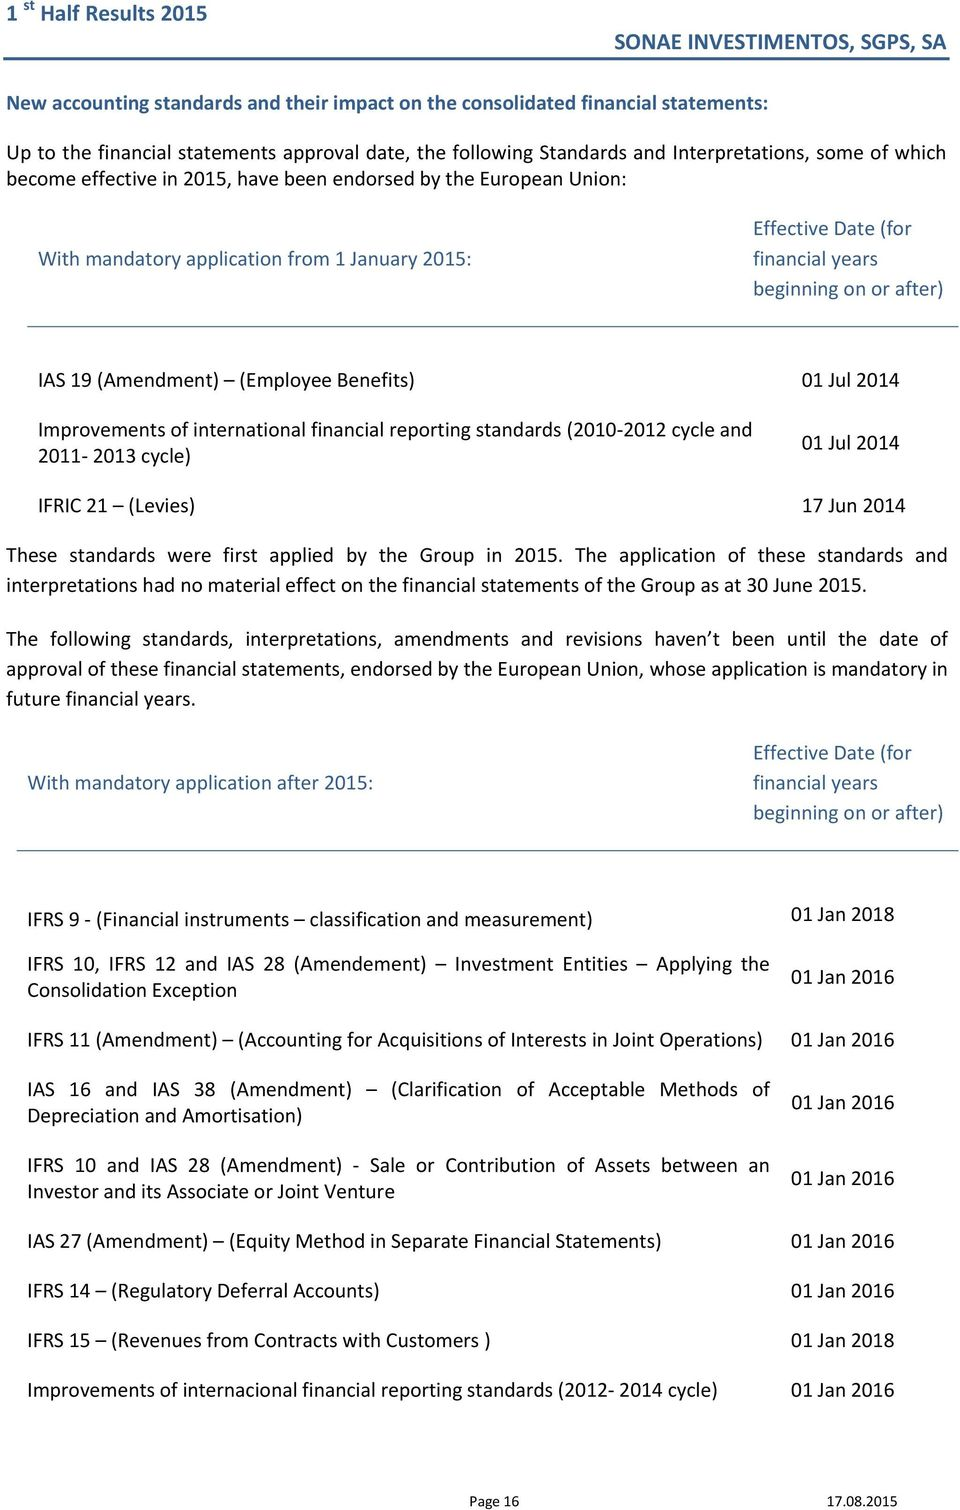 Benefits) 01 Jul 2014 Improvements of international financial reporting standards (2010 2012 cycle and 2011 2013 cycle) 01 Jul 2014 IFRIC 21 (Levies) 17 Jun 2014 These standards were first applied by